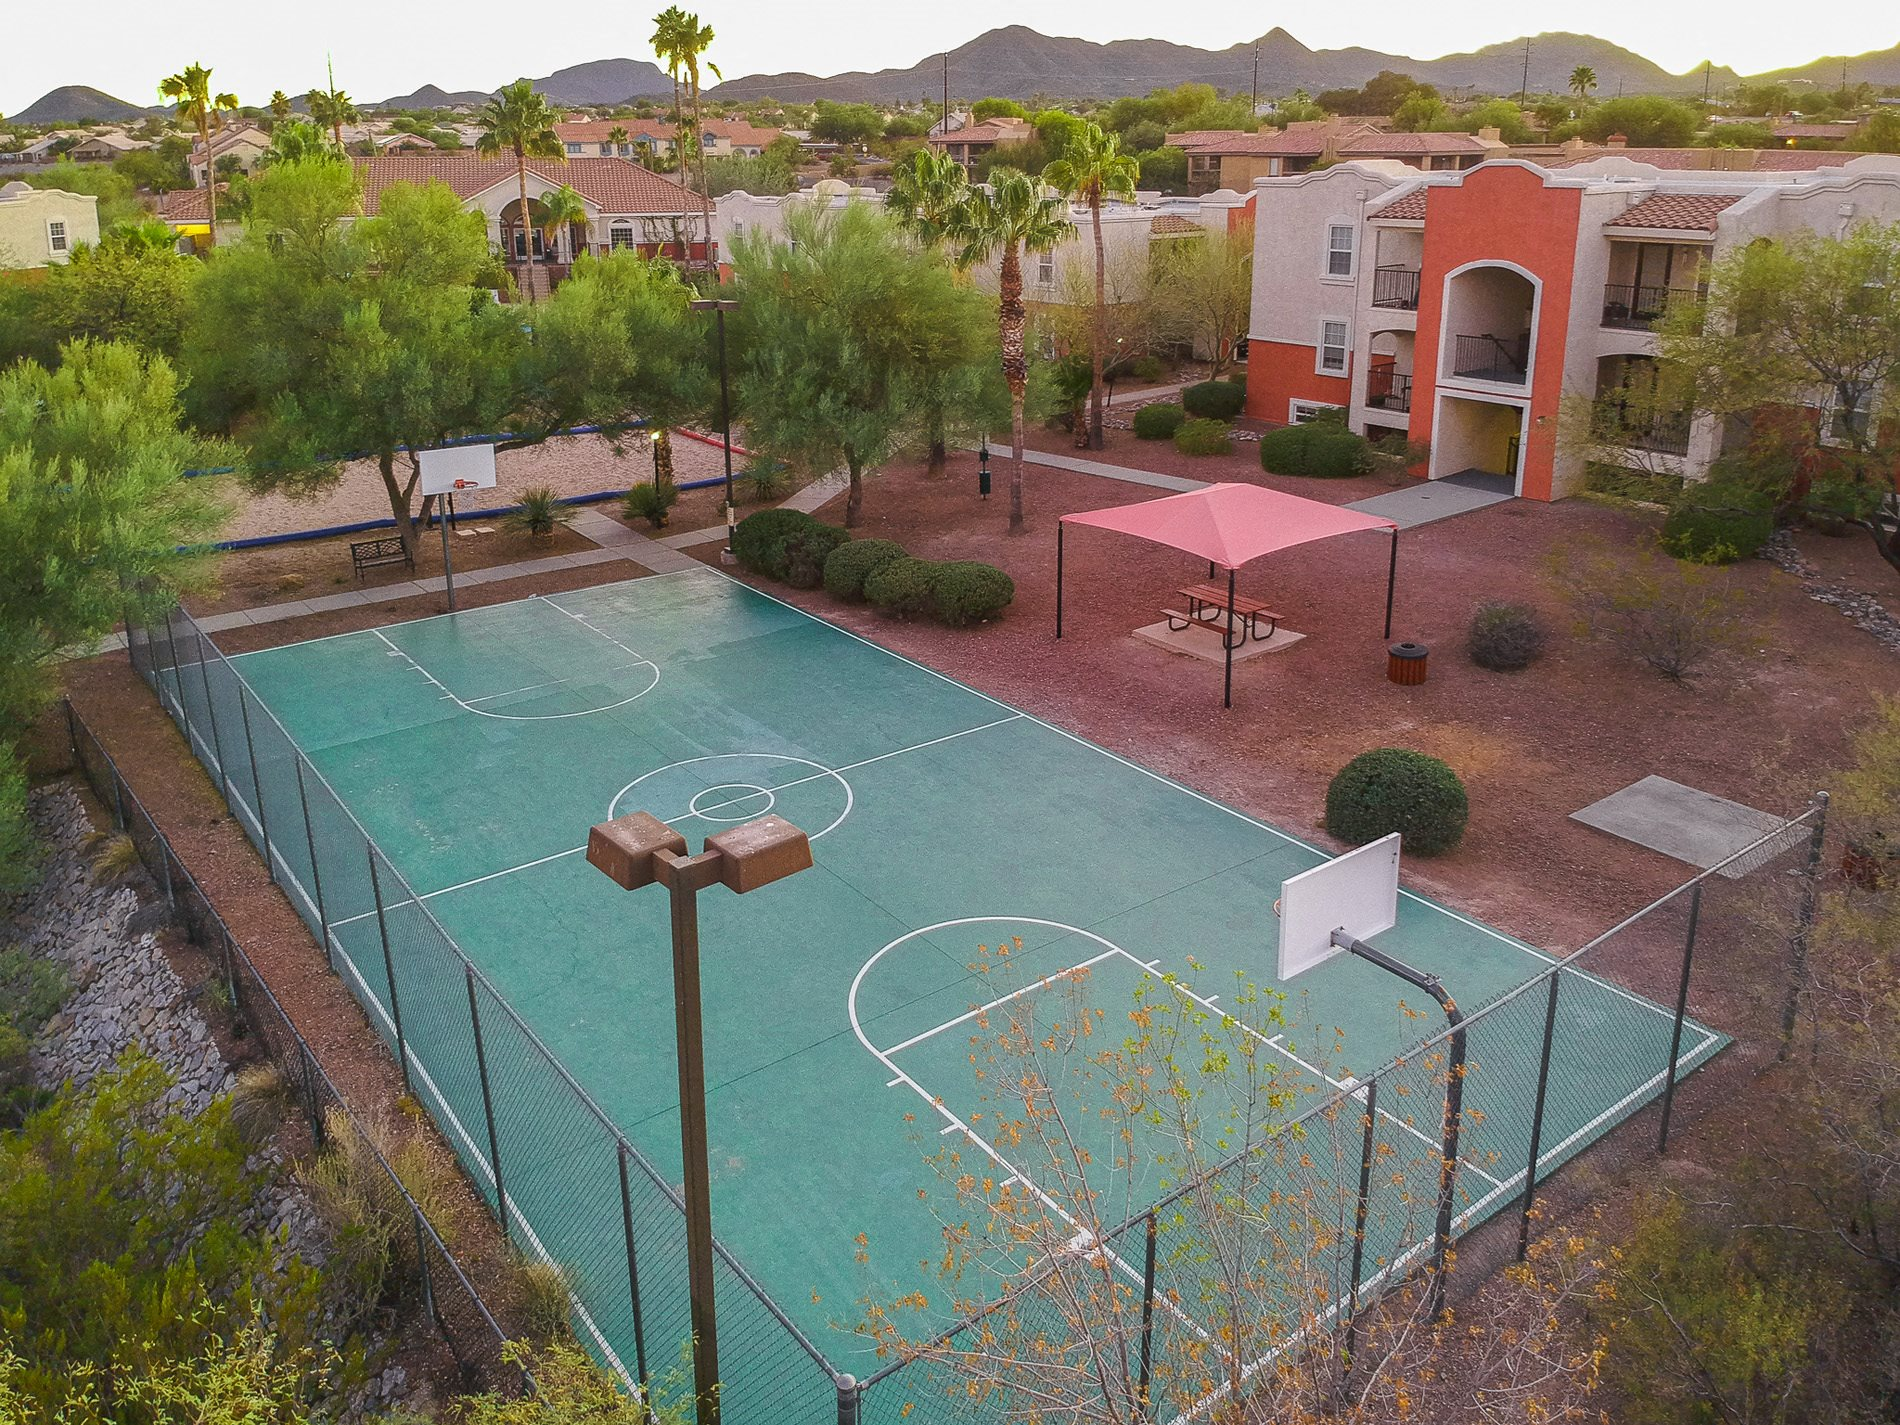 University Villa at Ironwood basketball court